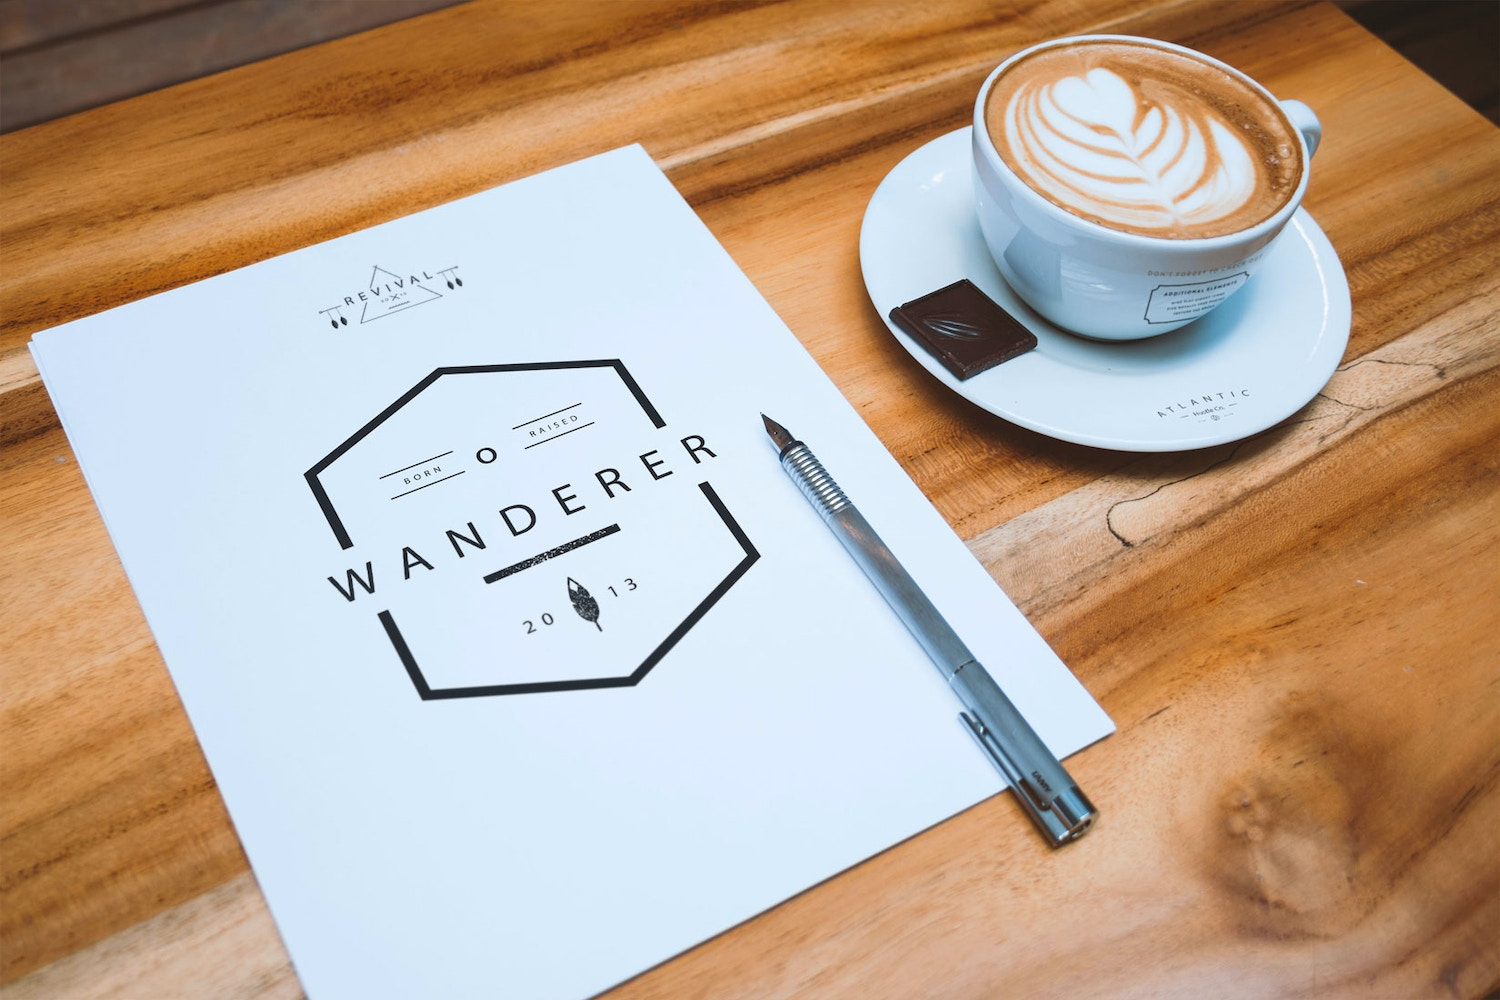 A4 Letterhead and Coffee Cup Mockup by Original Mockups on Original Mockups